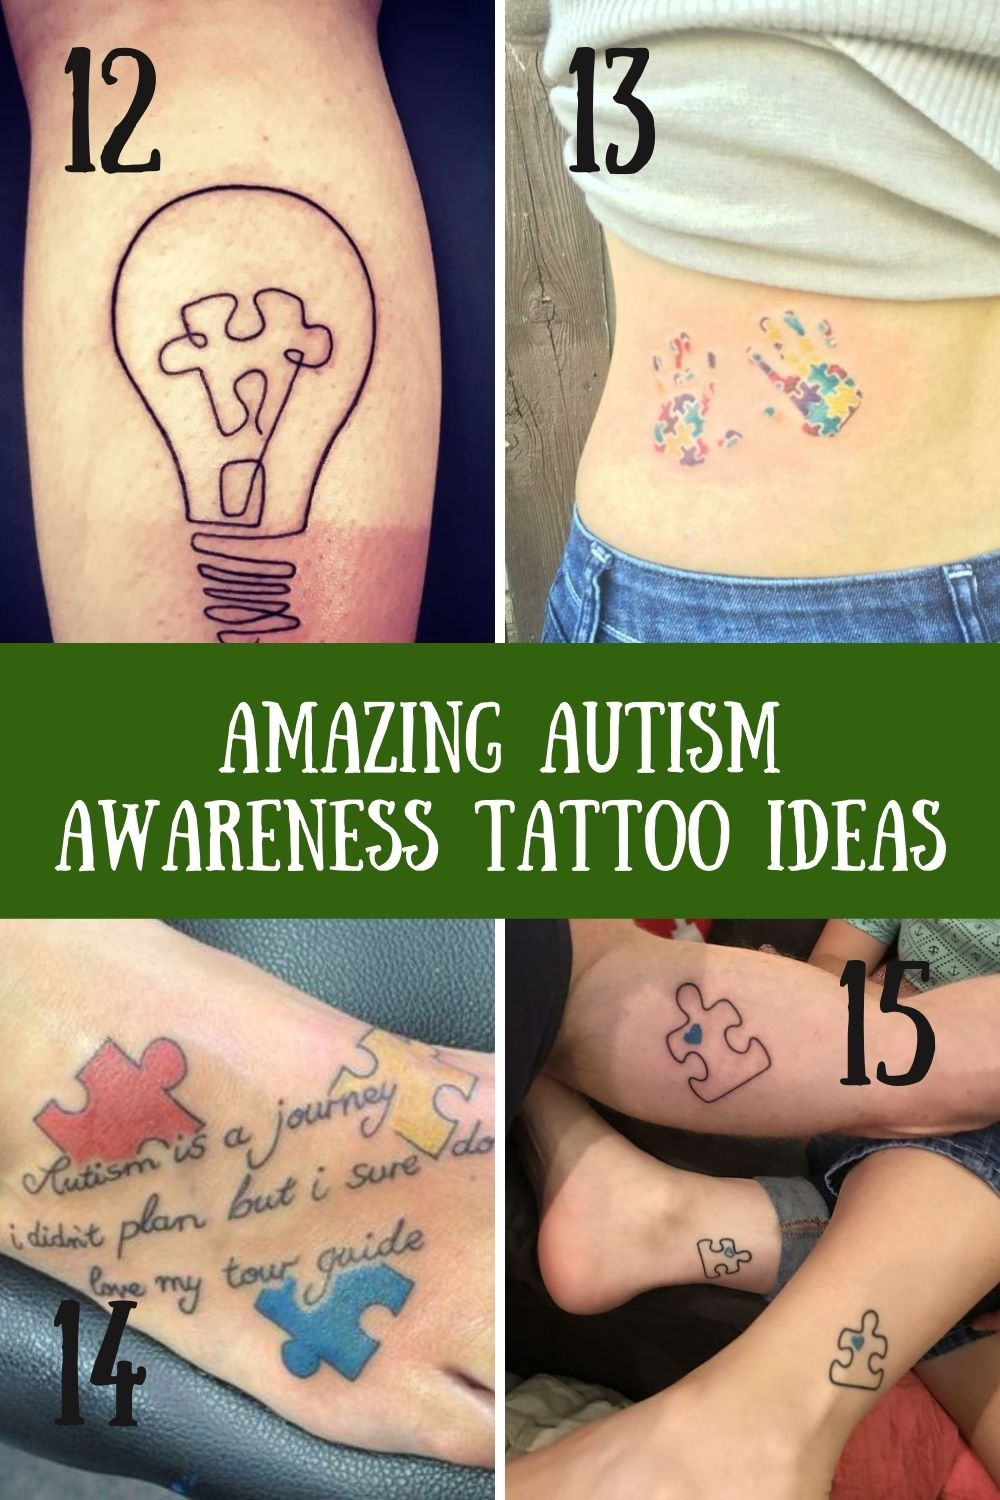 Sweet awareness tattoos for autistic families